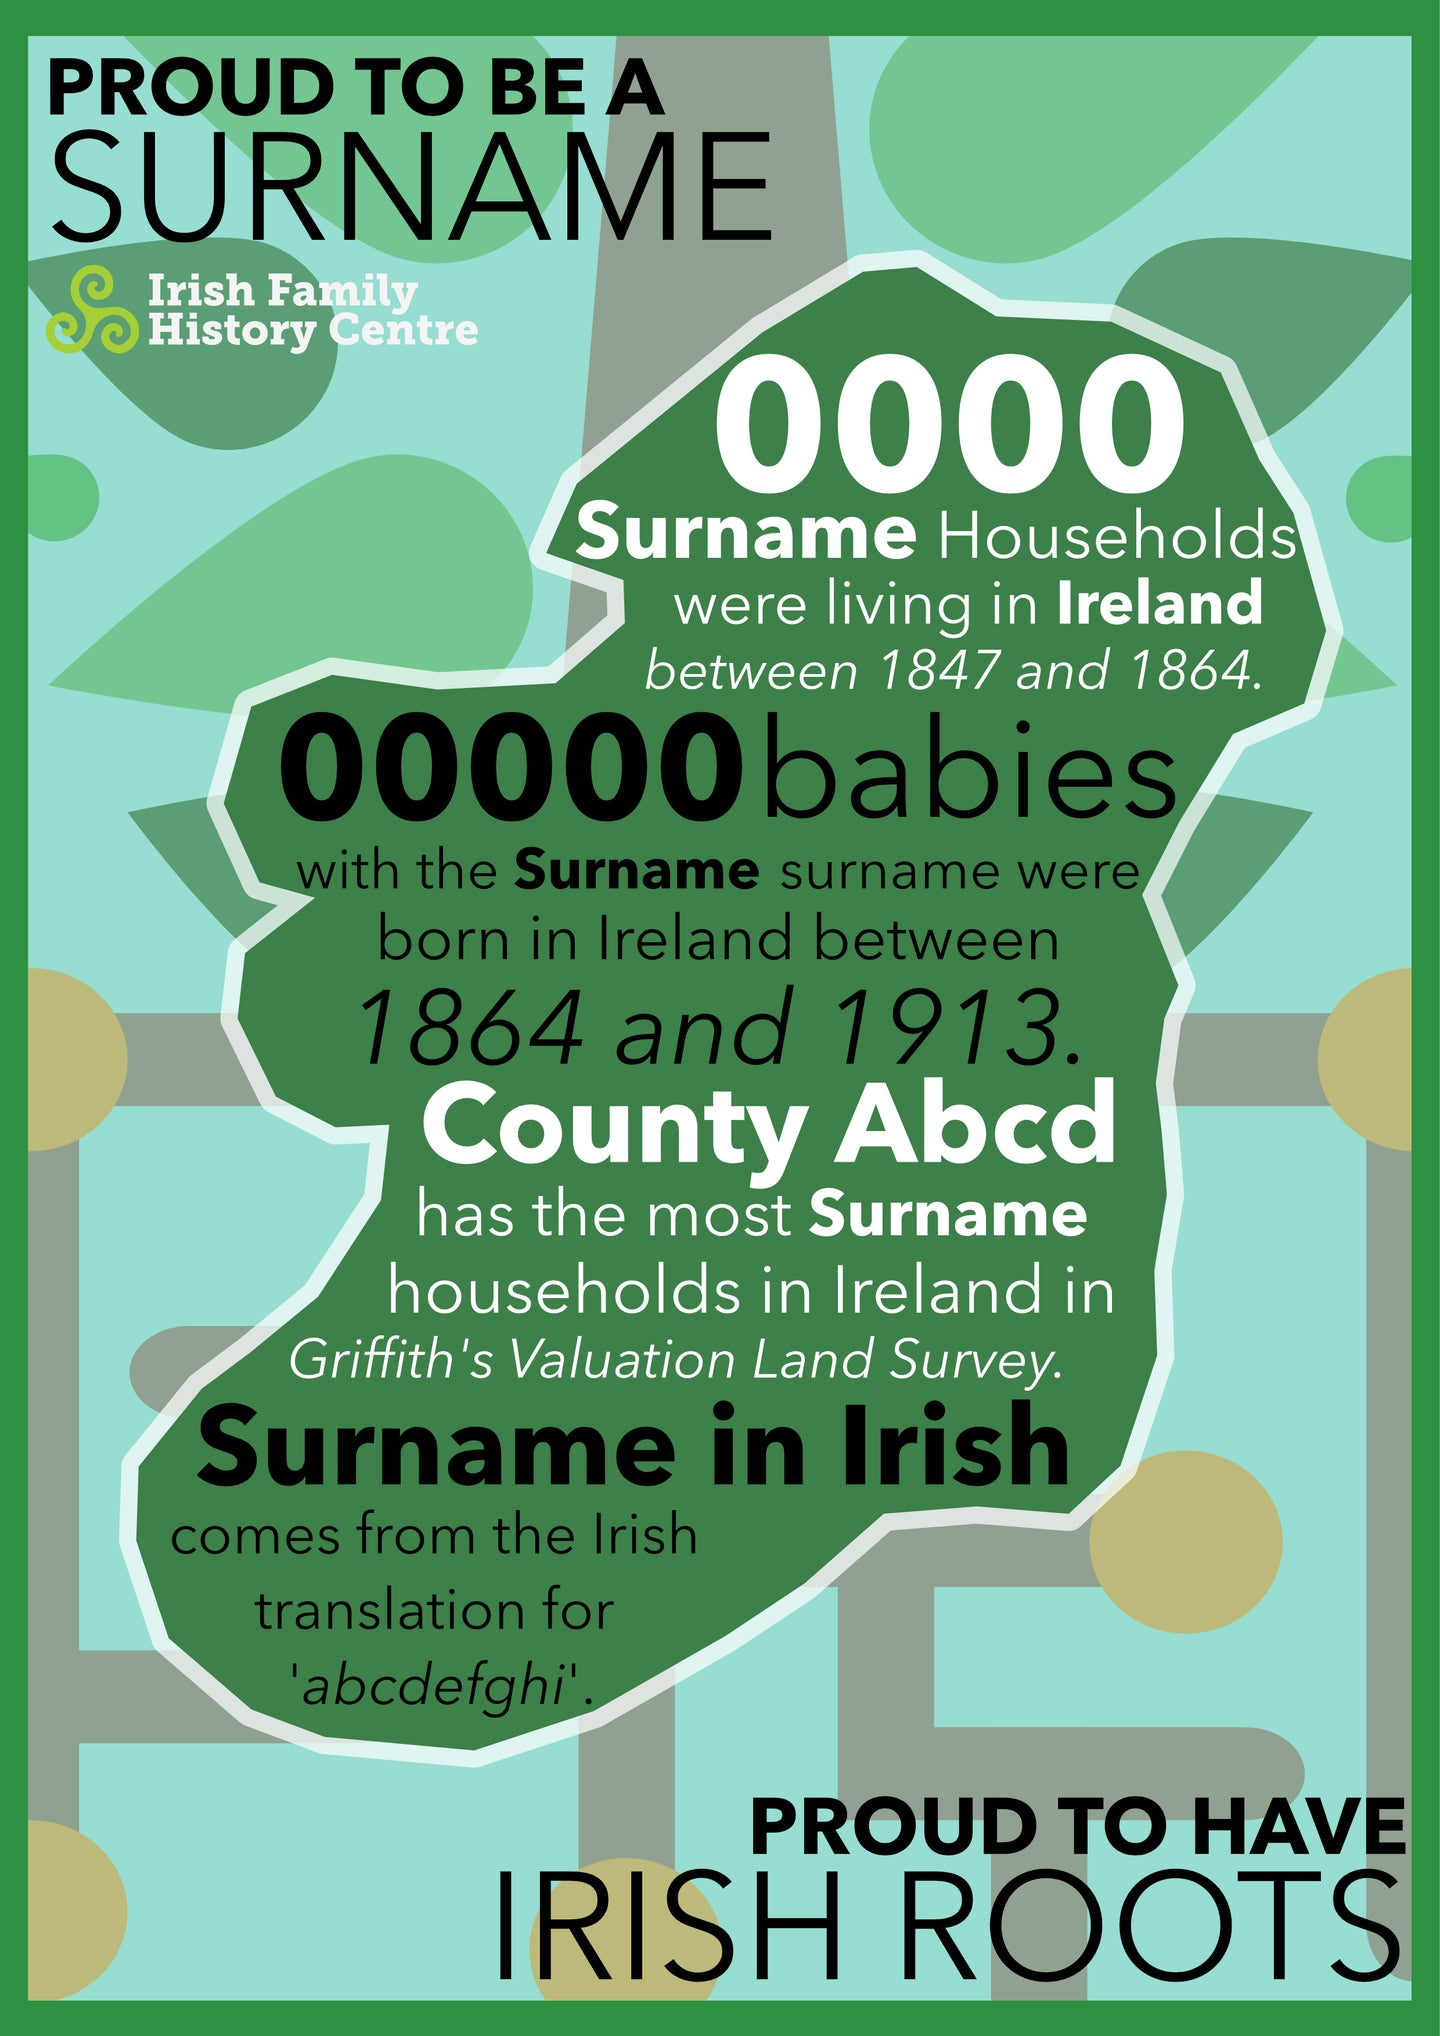 'Murry' Irish Surname Poster